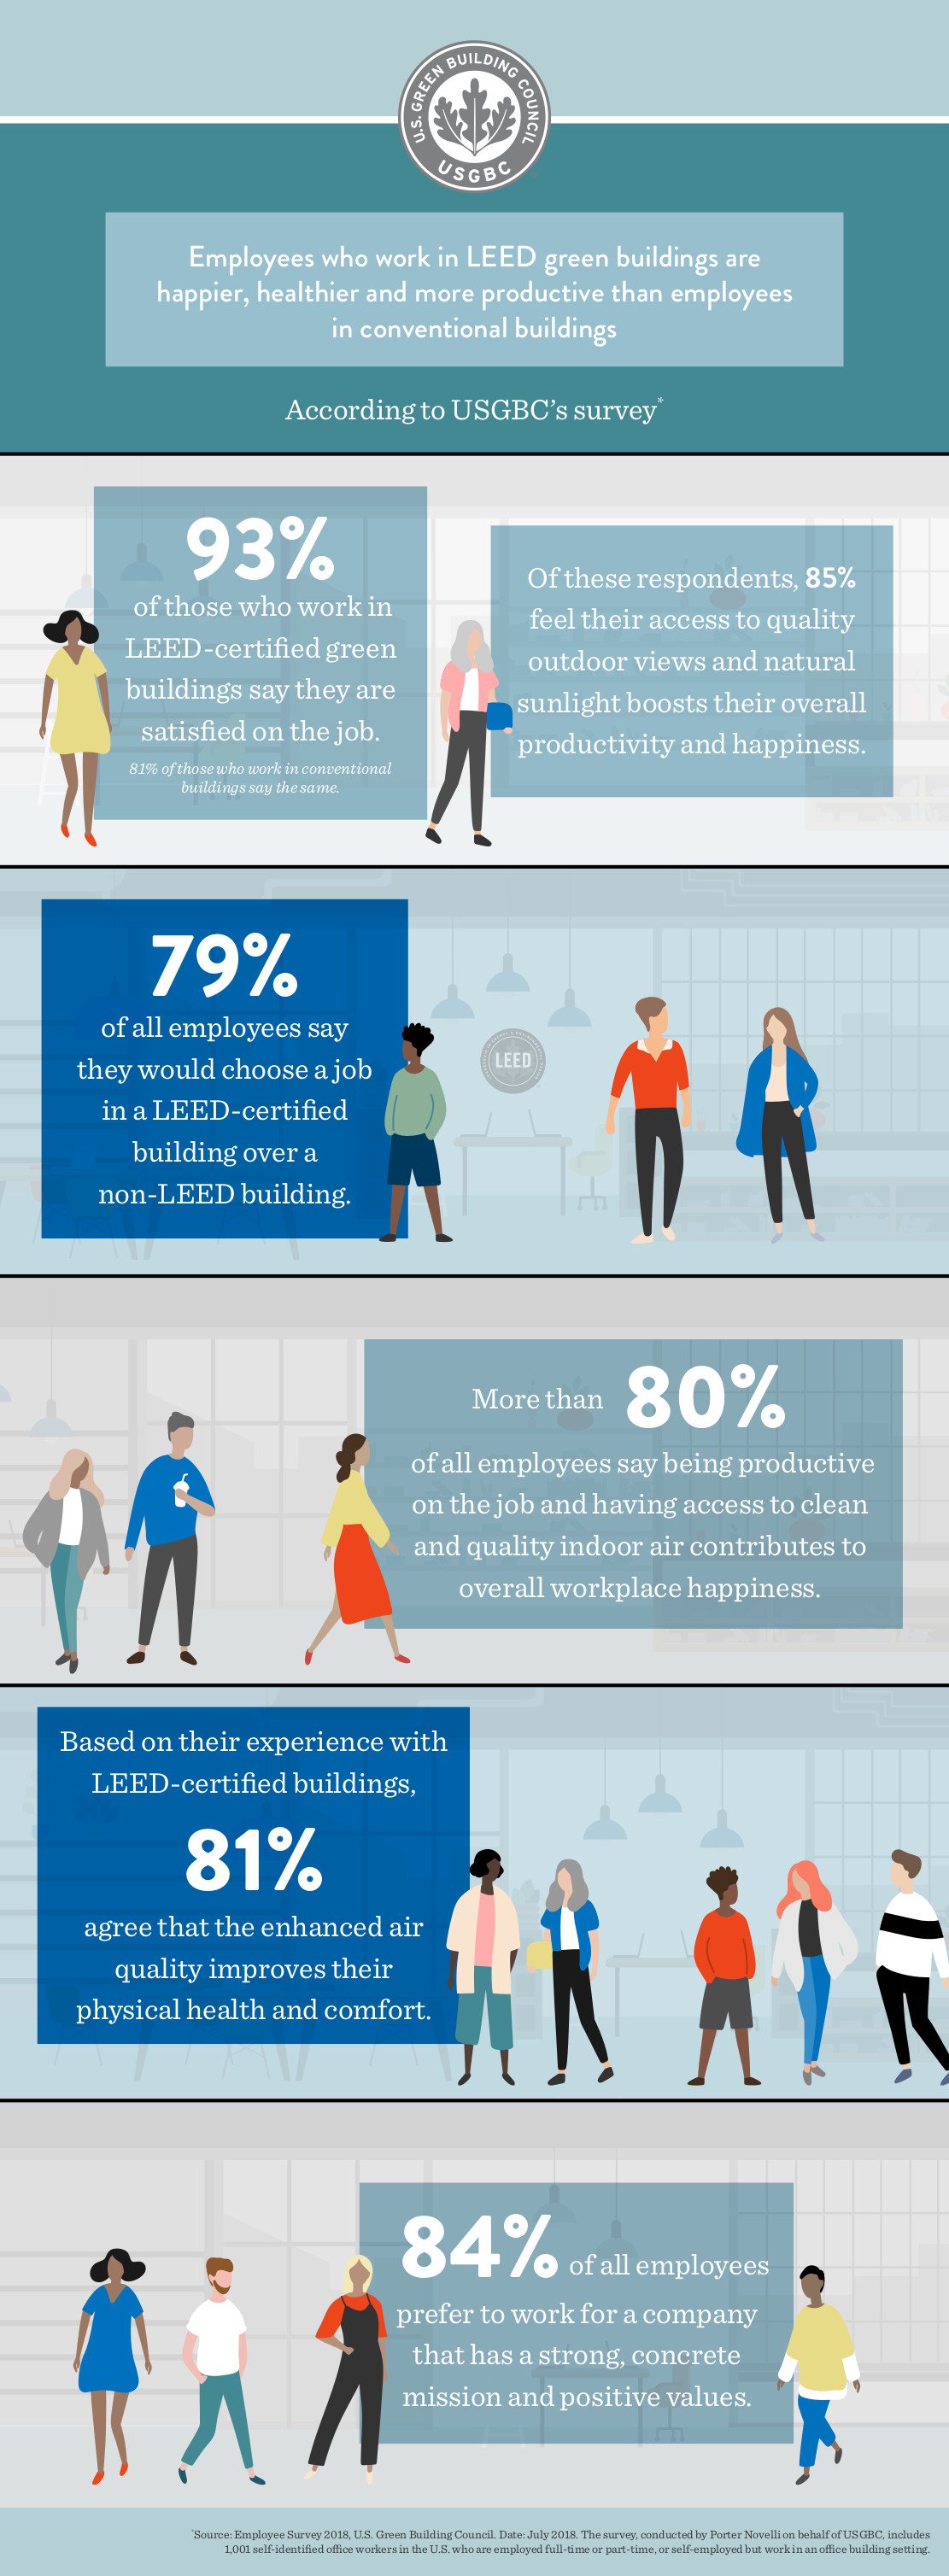 Infographic: Employee Happiness in Green Buildings